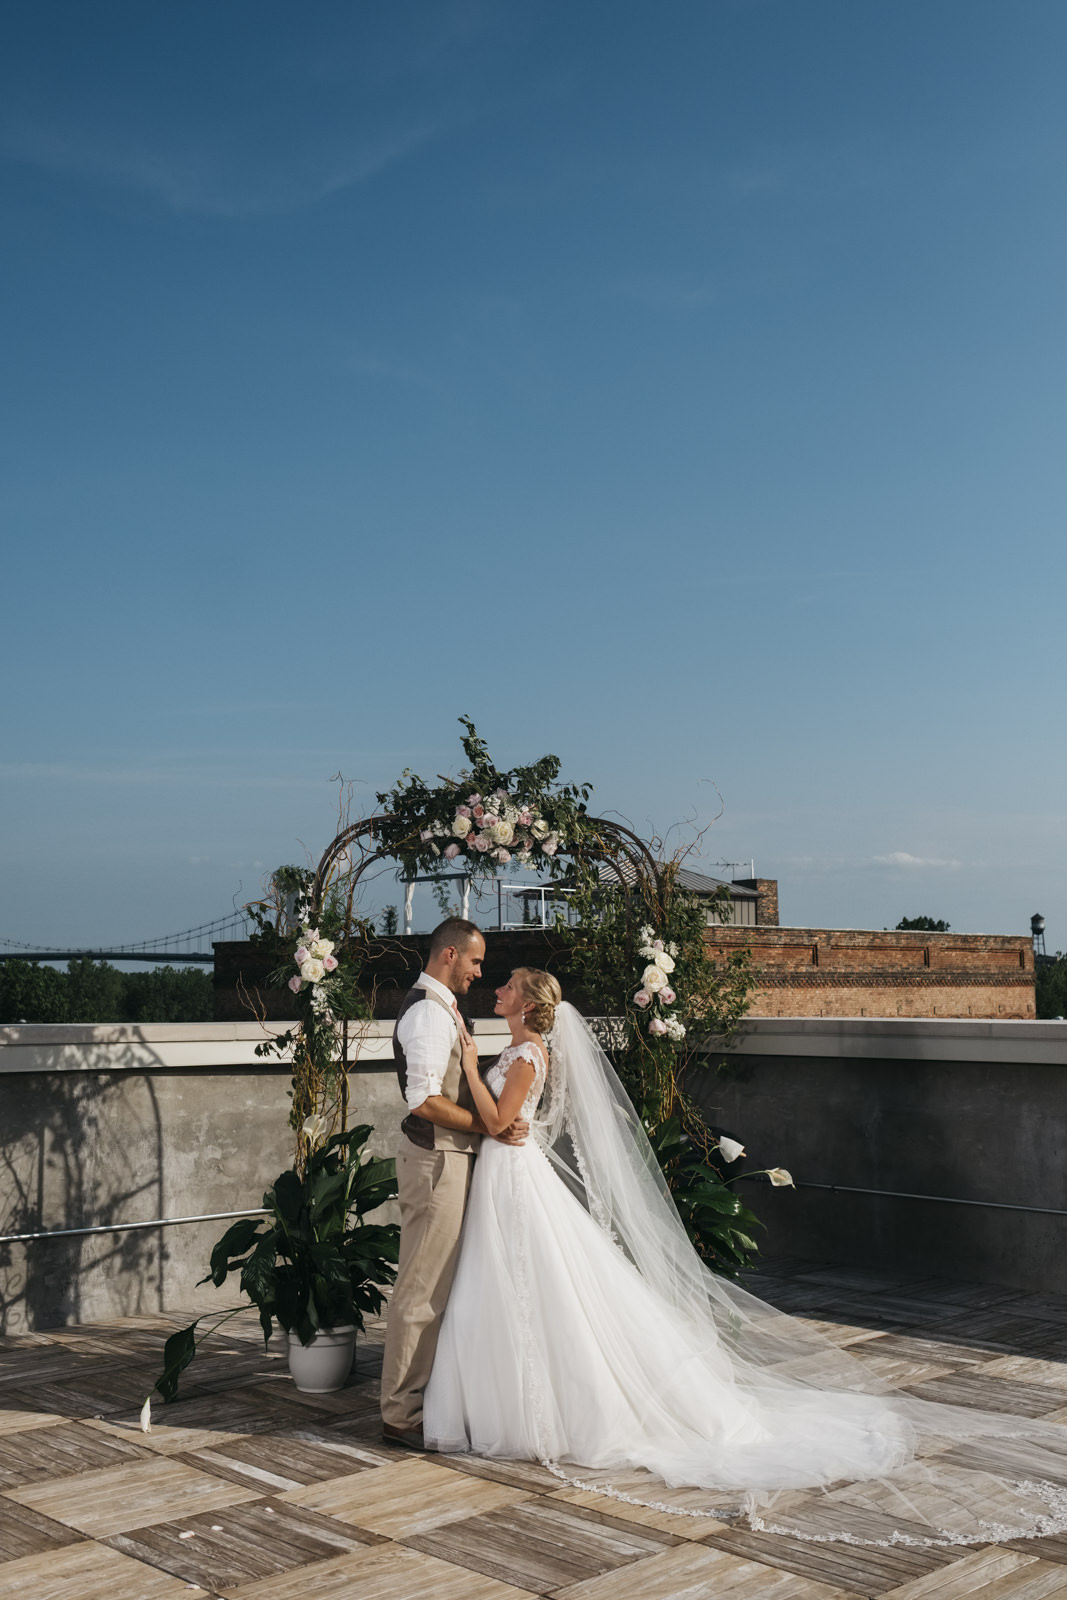 Bride and groom stand under their archway on a rooftop in downtown Toledo.